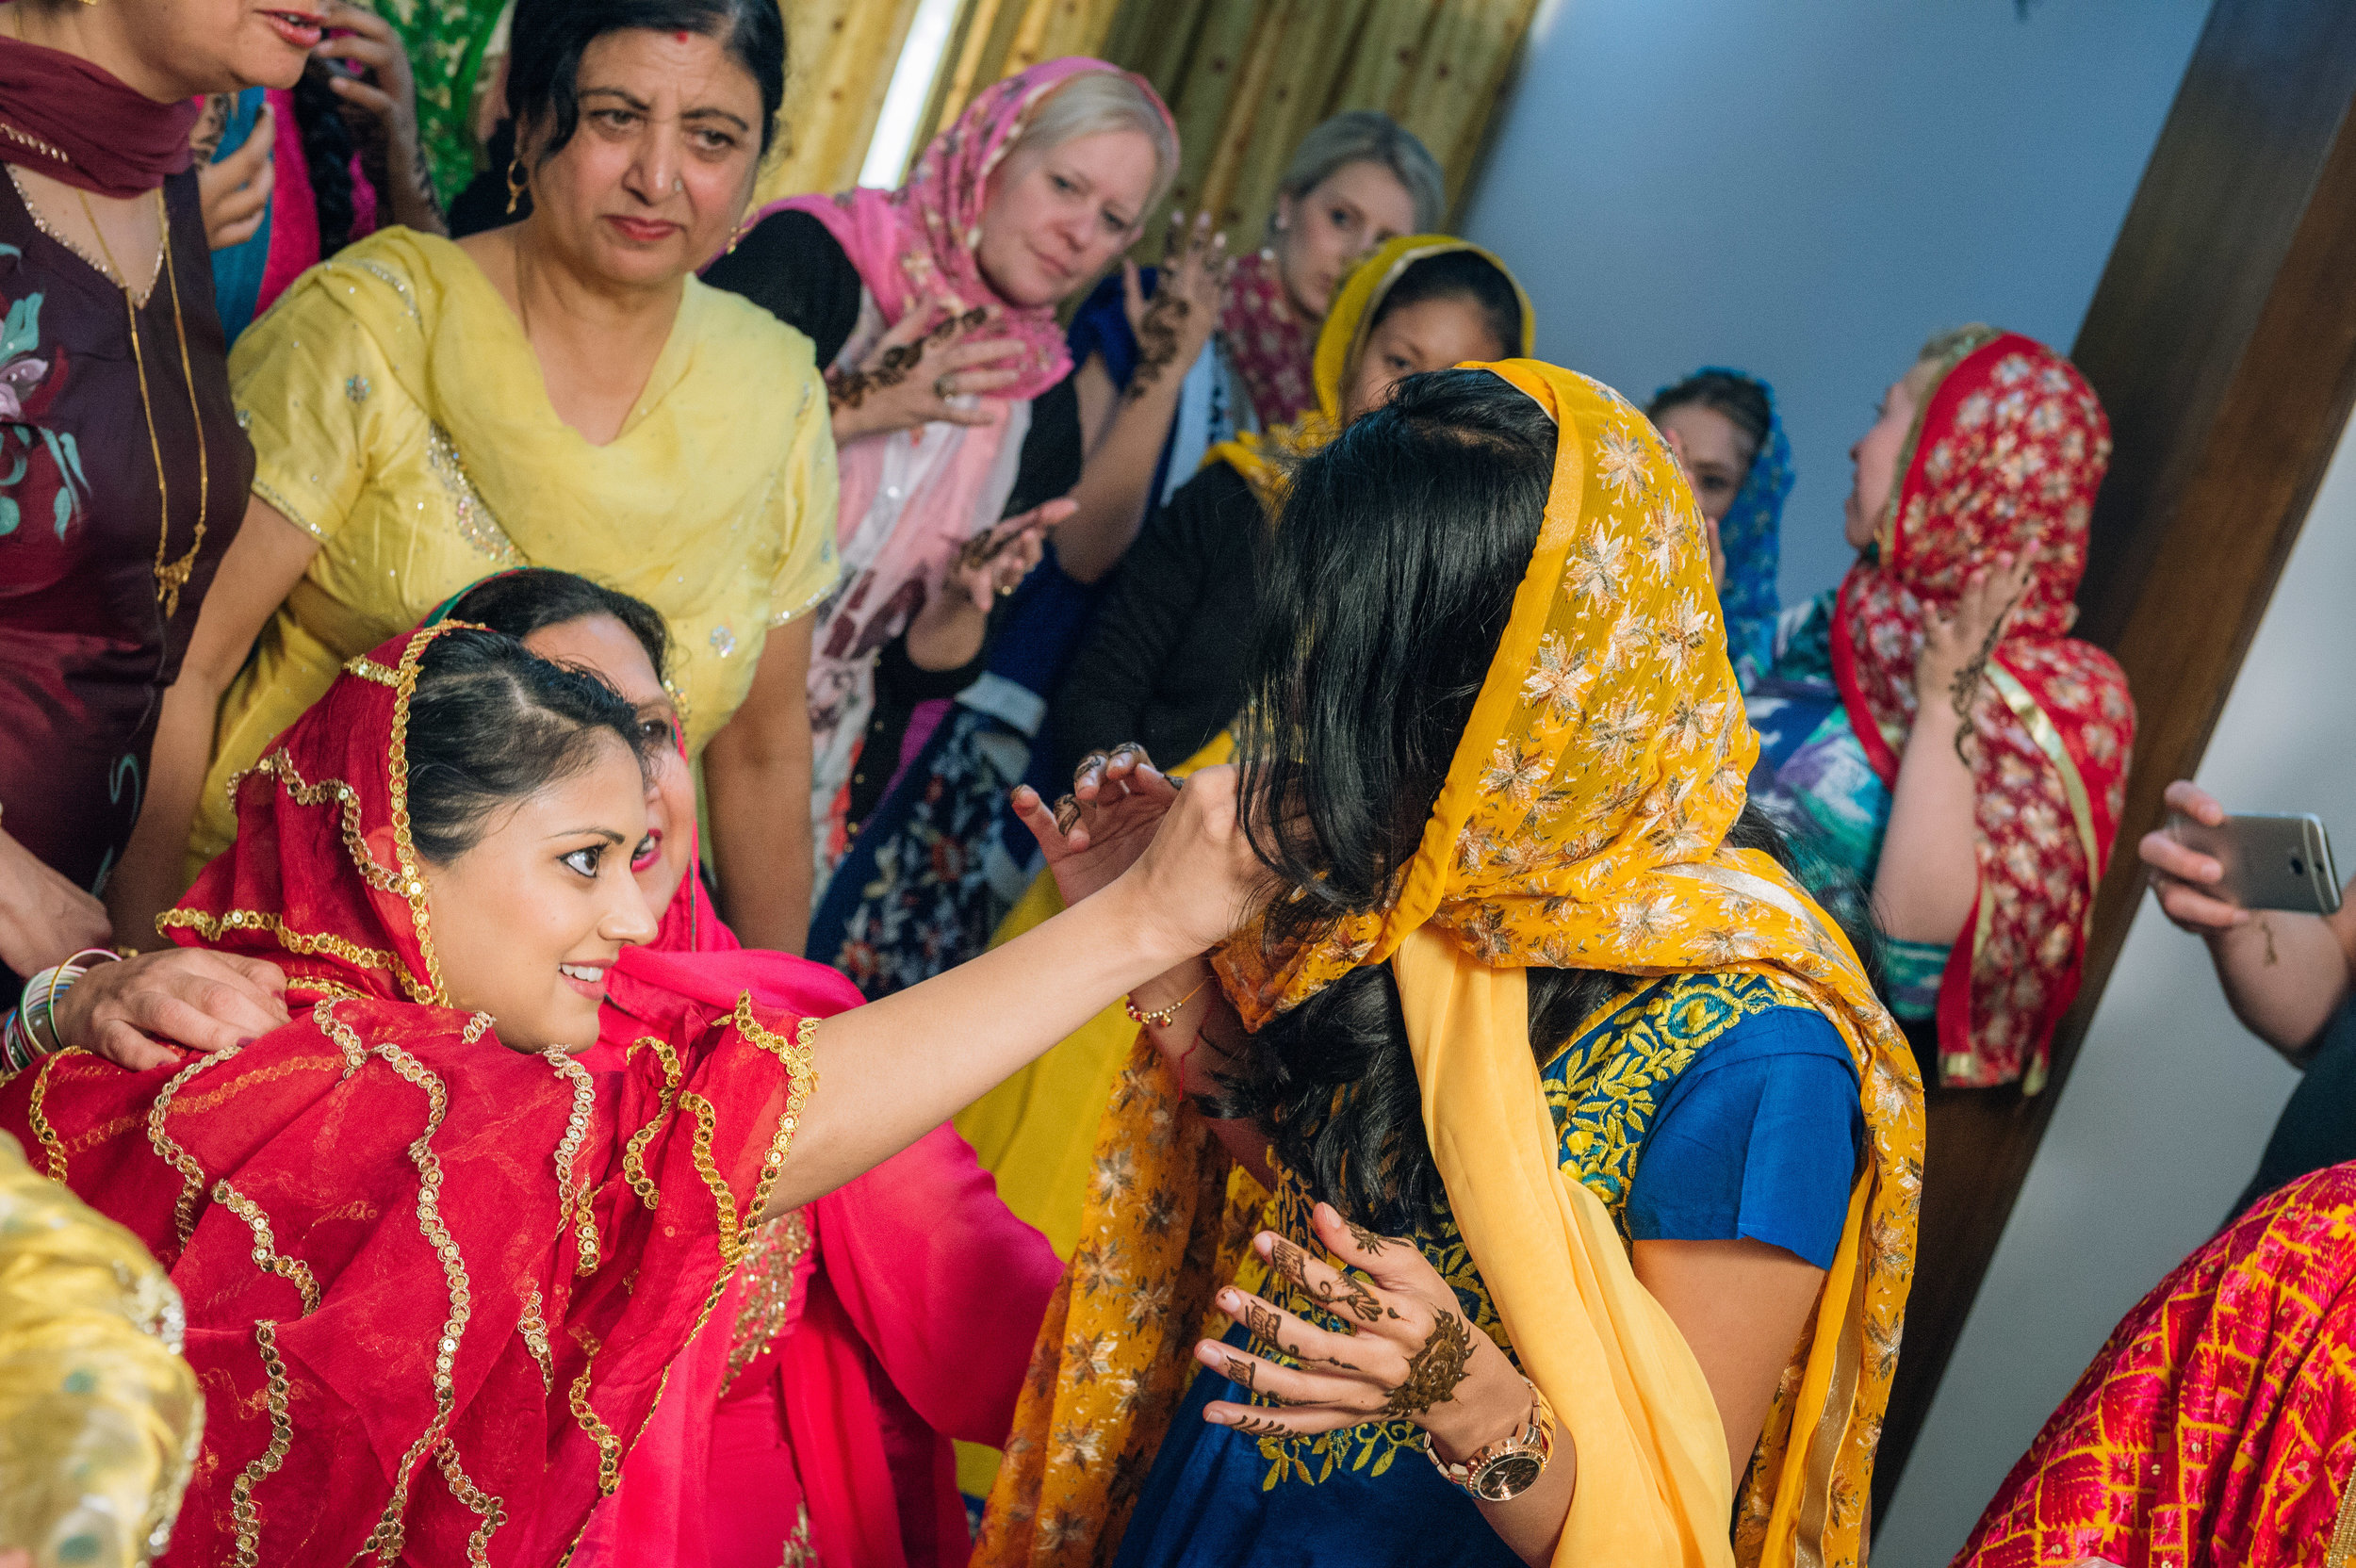 Honestly, I'm not sure what the bride was feeding this dear friend of hers but what I got to know is that the recipient of whatever the bride-to-be is feeding will be the next in line to get married. All the best Shalini!